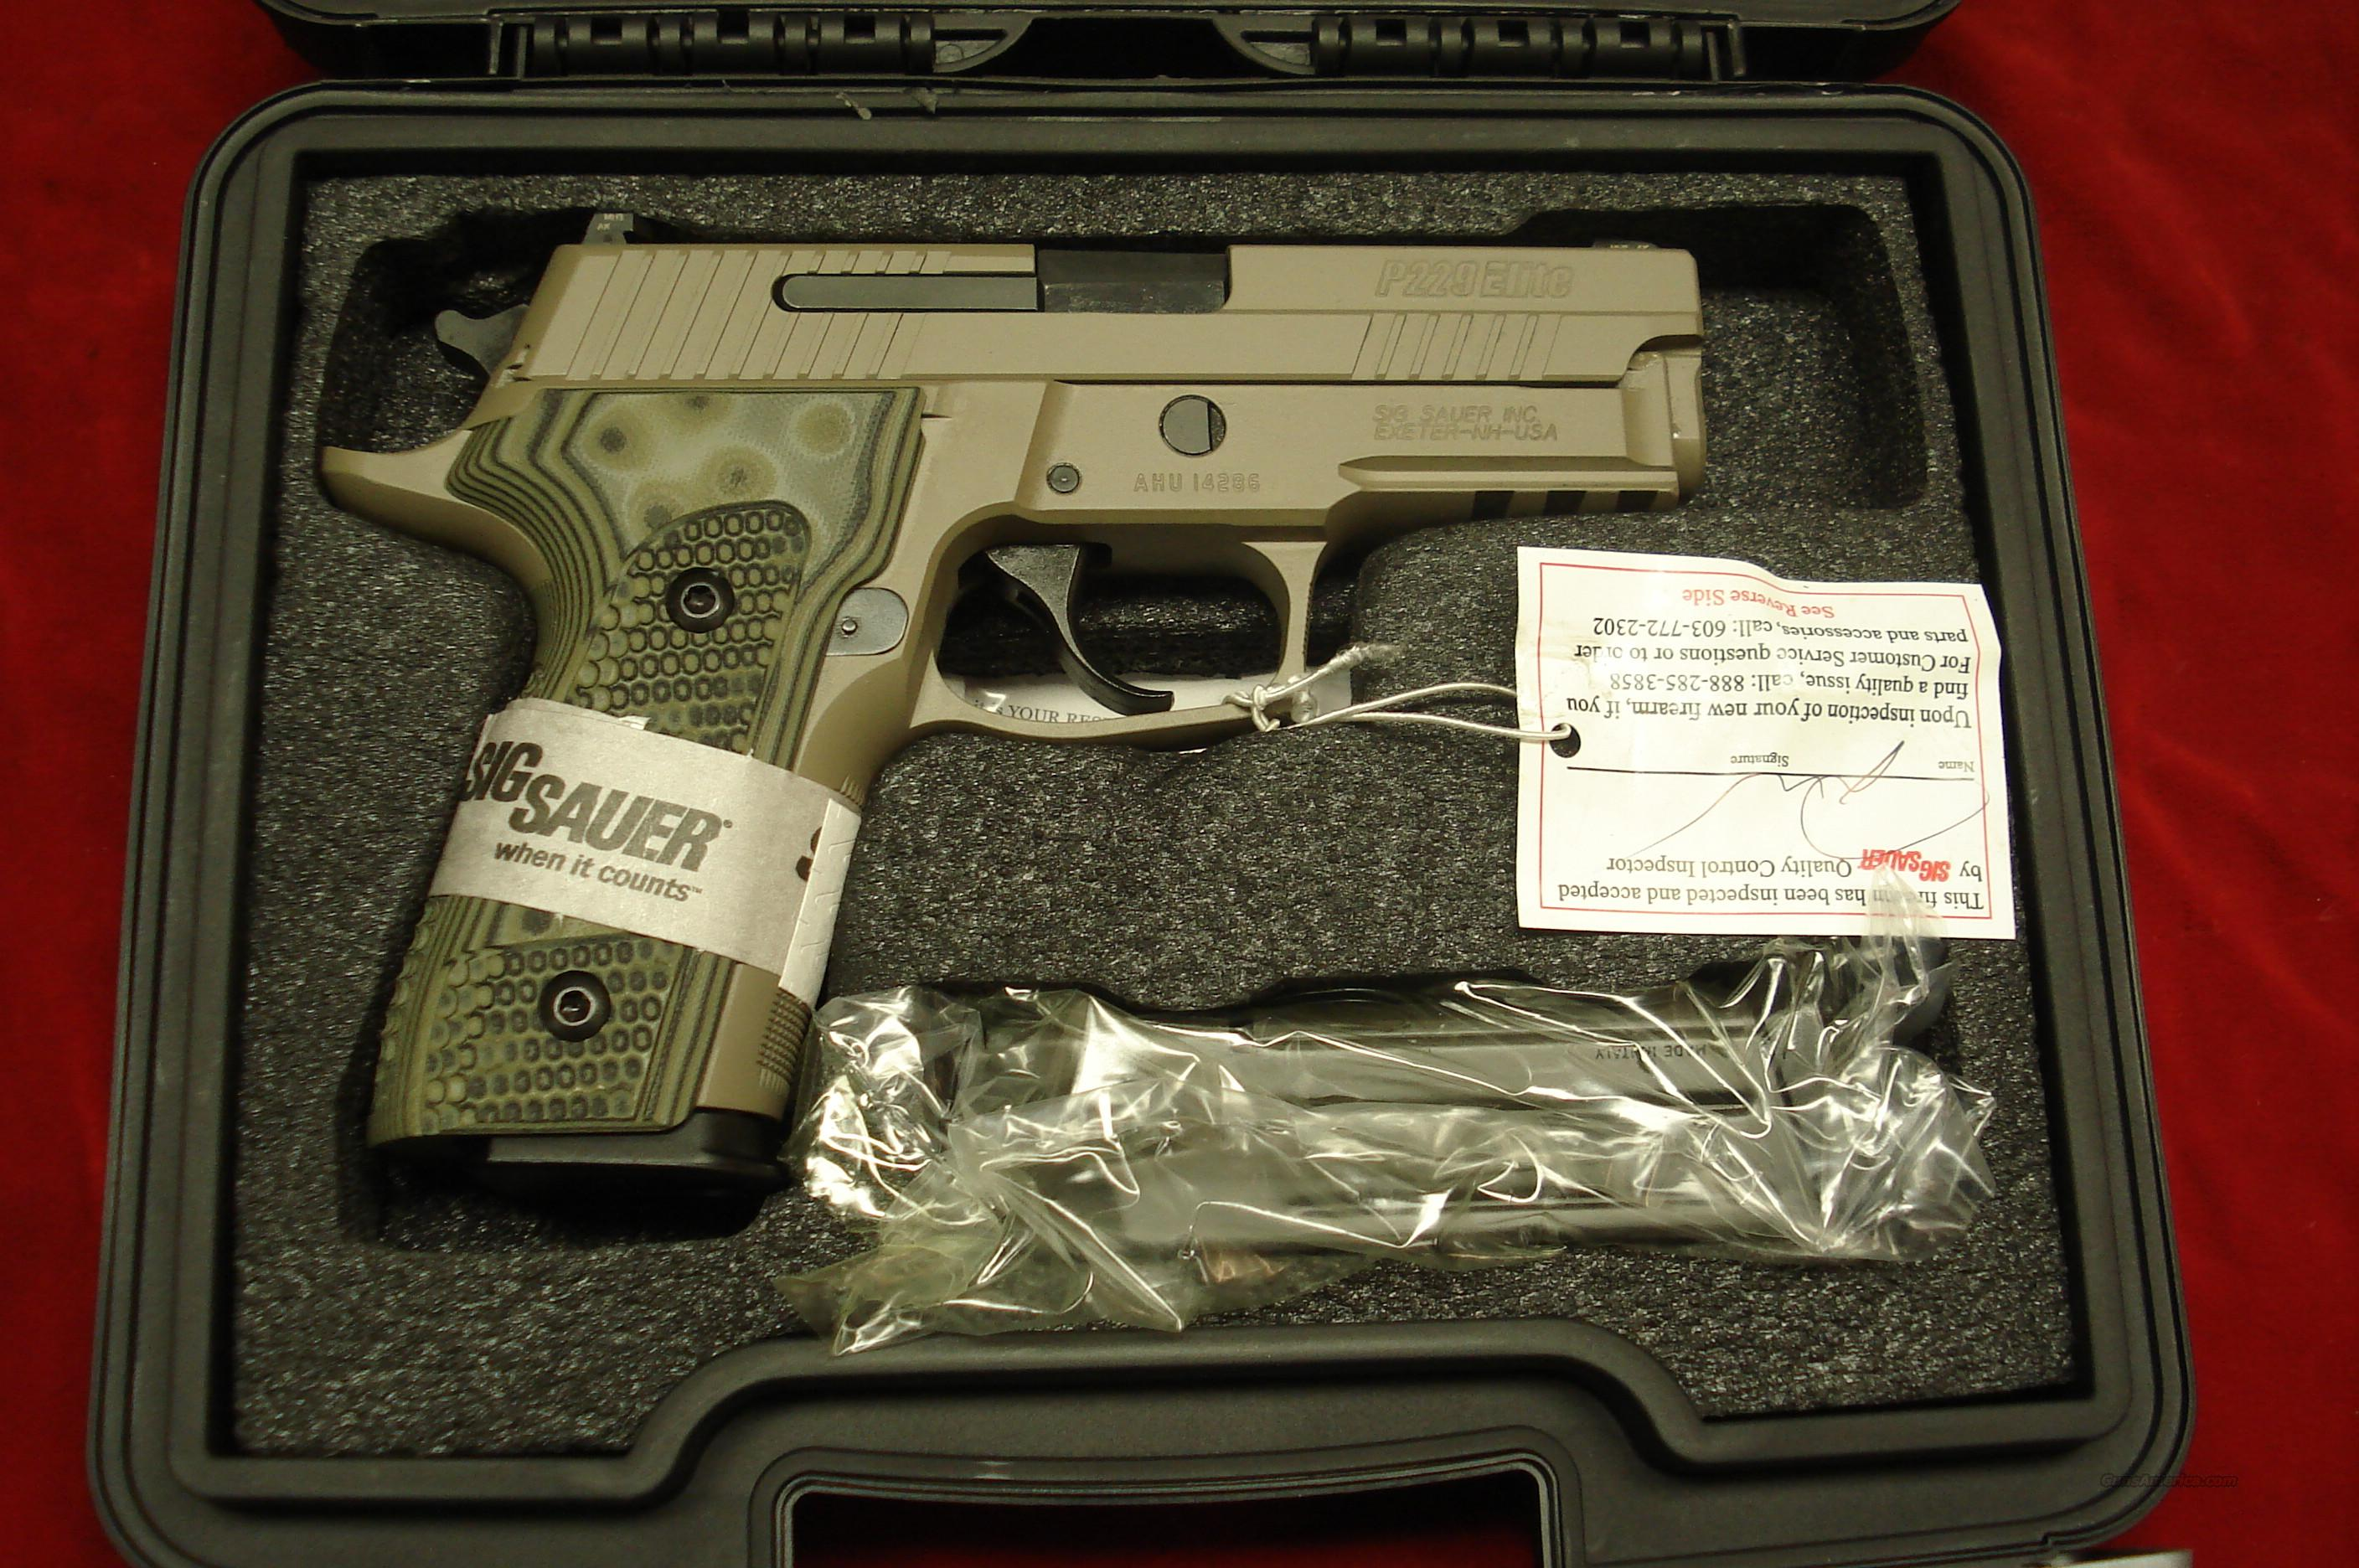 SIG SAUER P229 SCORPION ELITE 9MM  FLAT DARK EARTH WITH NIGHT SIGHTS NEW   Guns > Pistols > Sig - Sauer/Sigarms Pistols > P229